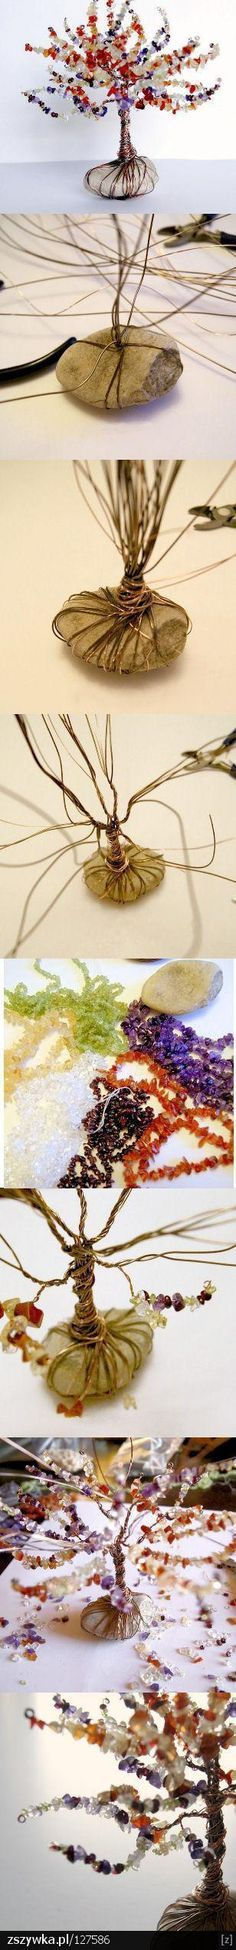 """DIY Beads : DIY bead and wire tree ~wrap a large """"Stone"""" with """"Wire"""" and add lots of """"Jewellery Stones""""~"""